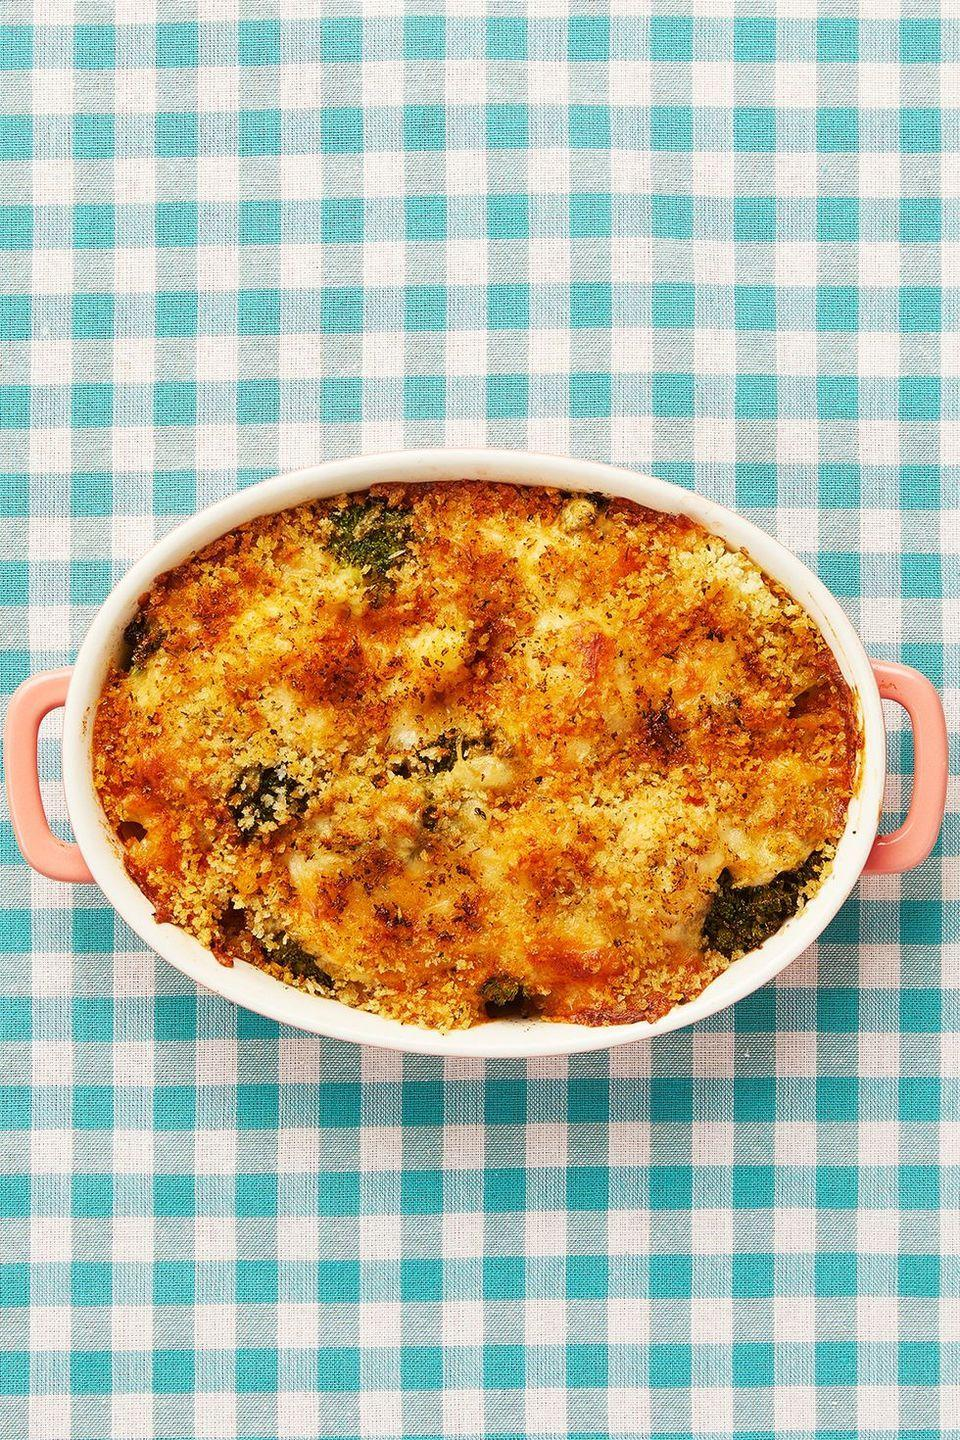 """<p>This holiday mainstay is packed to the brim with cheesy goodness. The broccoli adds a refreshing, tender layer of flavor to an already outstanding dish.</p><p><strong><a href=""""https://www.thepioneerwoman.com/food-cooking/recipes/a11888/broccoli-cauliflower-casserole/"""" rel=""""nofollow noopener"""" target=""""_blank"""" data-ylk=""""slk:Get the recipe"""" class=""""link rapid-noclick-resp"""">Get the recipe</a>.</strong></p><p><a class=""""link rapid-noclick-resp"""" href=""""https://go.redirectingat.com?id=74968X1596630&url=https%3A%2F%2Fwww.walmart.com%2Fsearch%2F%3Fquery%3Dbakeware&sref=https%3A%2F%2Fwww.thepioneerwoman.com%2Ffood-cooking%2Fmeals-menus%2Fg35589850%2Fmothers-day-dinner-ideas%2F"""" rel=""""nofollow noopener"""" target=""""_blank"""" data-ylk=""""slk:SHOP BAKEWARE""""><strong>SHOP BAKEWARE</strong></a></p>"""